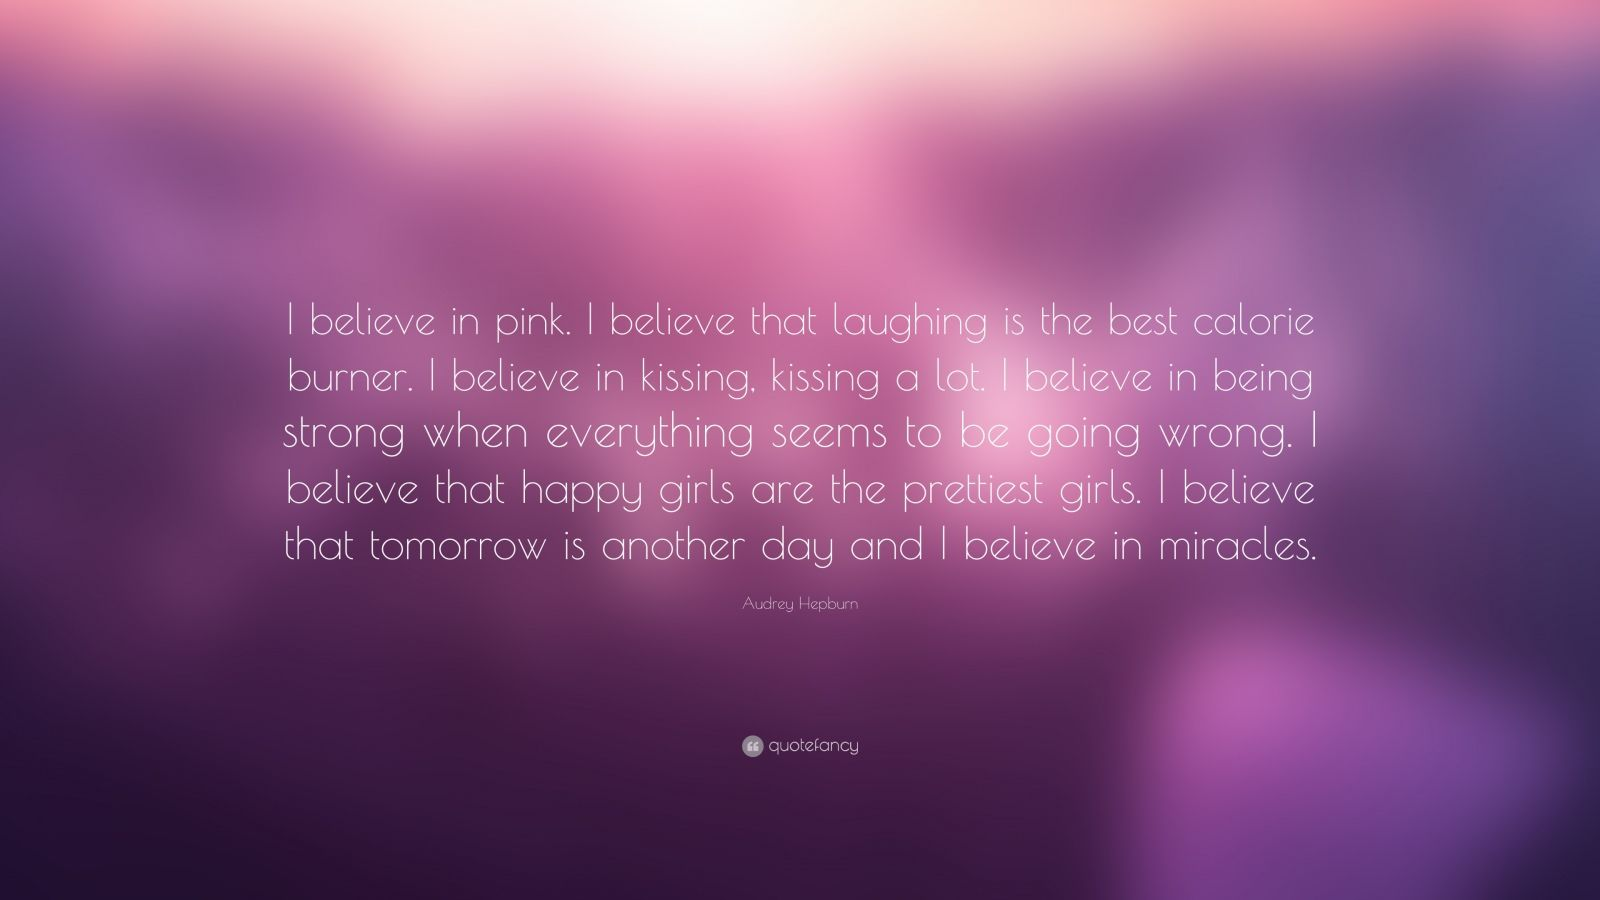 """Audrey Hepburn Quote: """"I believe in pink. I believe that laughing is the best calorie burner. I believe in kissing, kissing a lot. I believe in being strong when everything seems to be going wrong. I believe that happy girls are the prettiest girls. I believe that tomorrow is another day and I believe in miracles."""""""